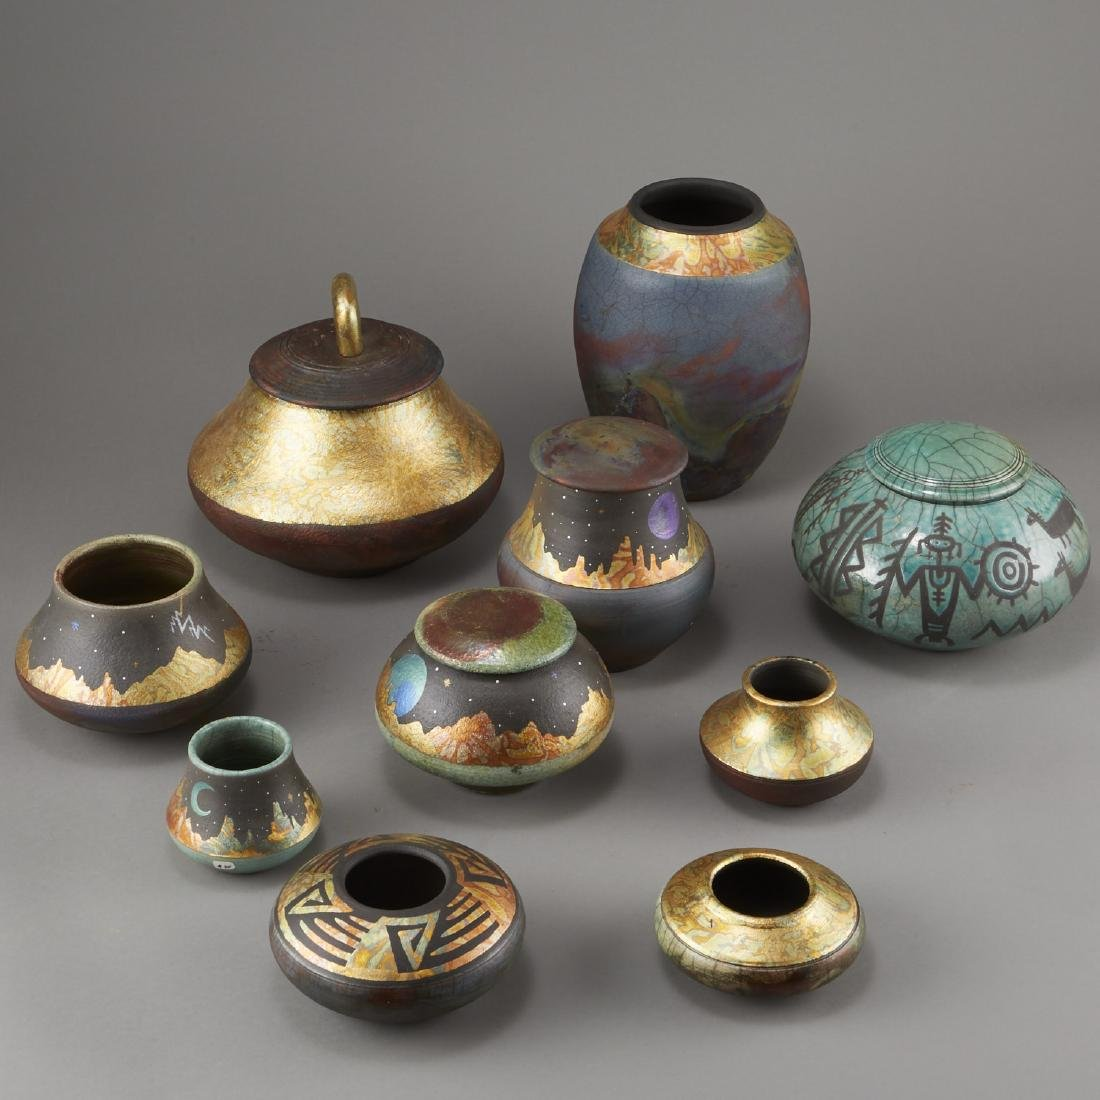 Group of 10 Rick Loewenkamp Raku Pottery - 2